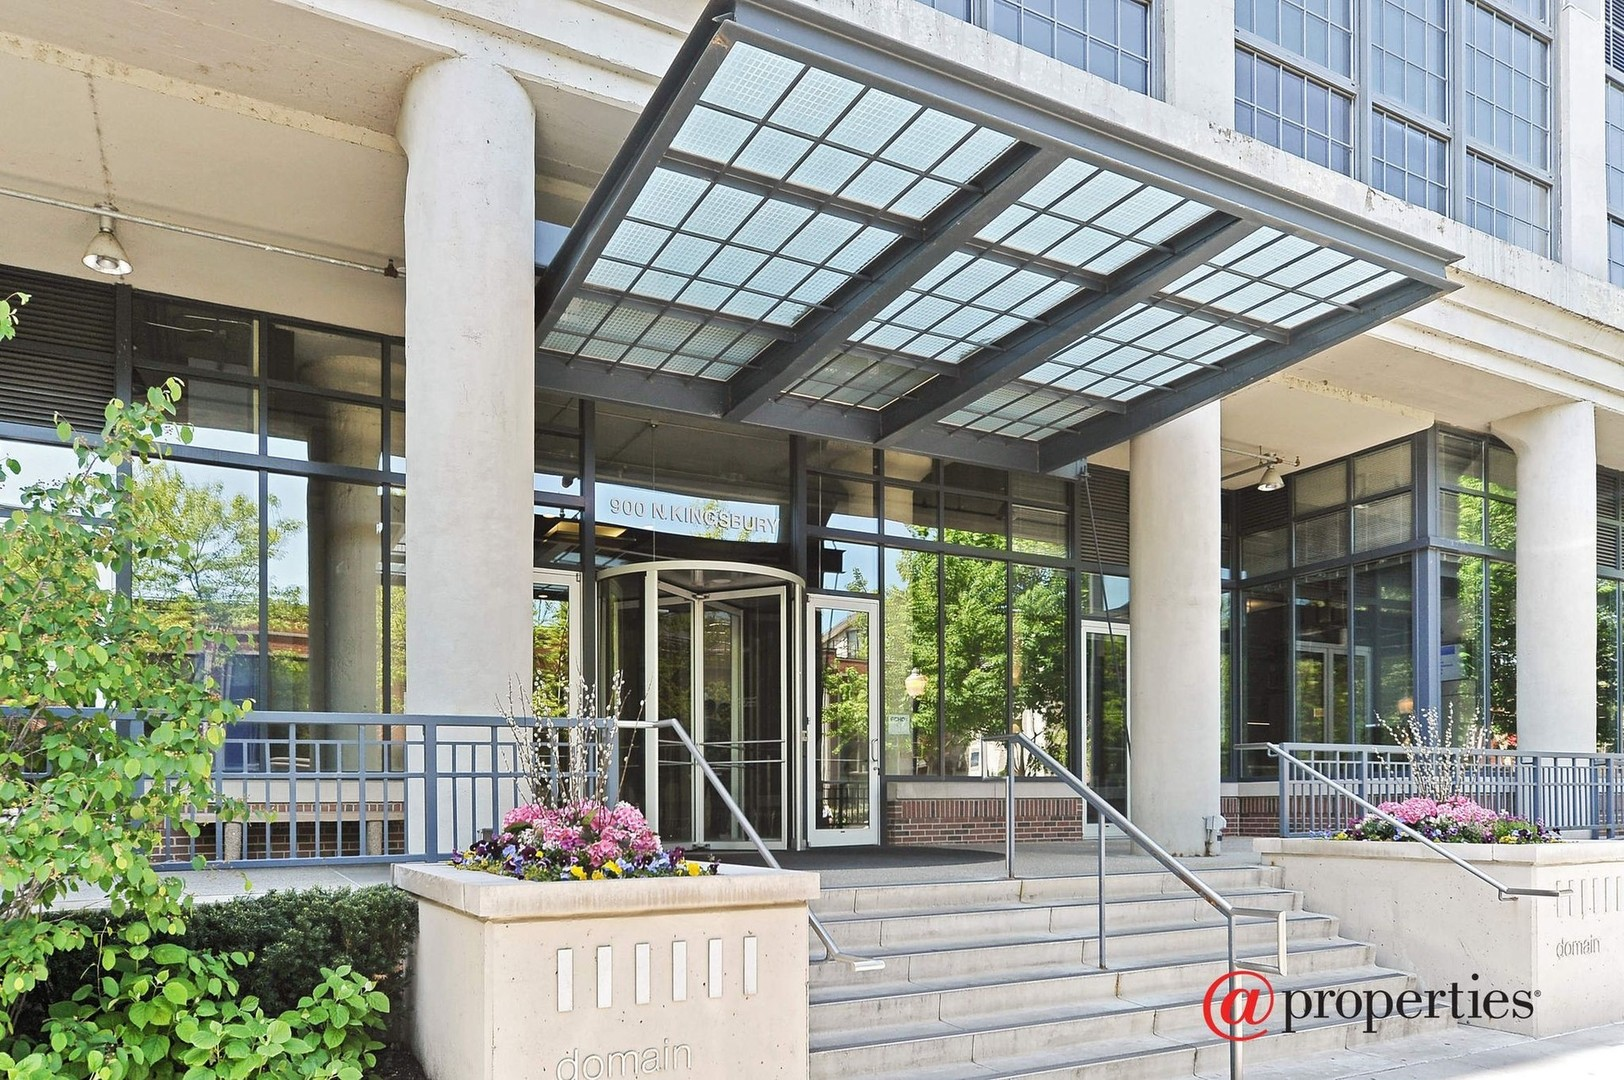 Property for sale at 900 North Kingsbury Street Unit: 851, Chicago-Near North Side,  IL 60610